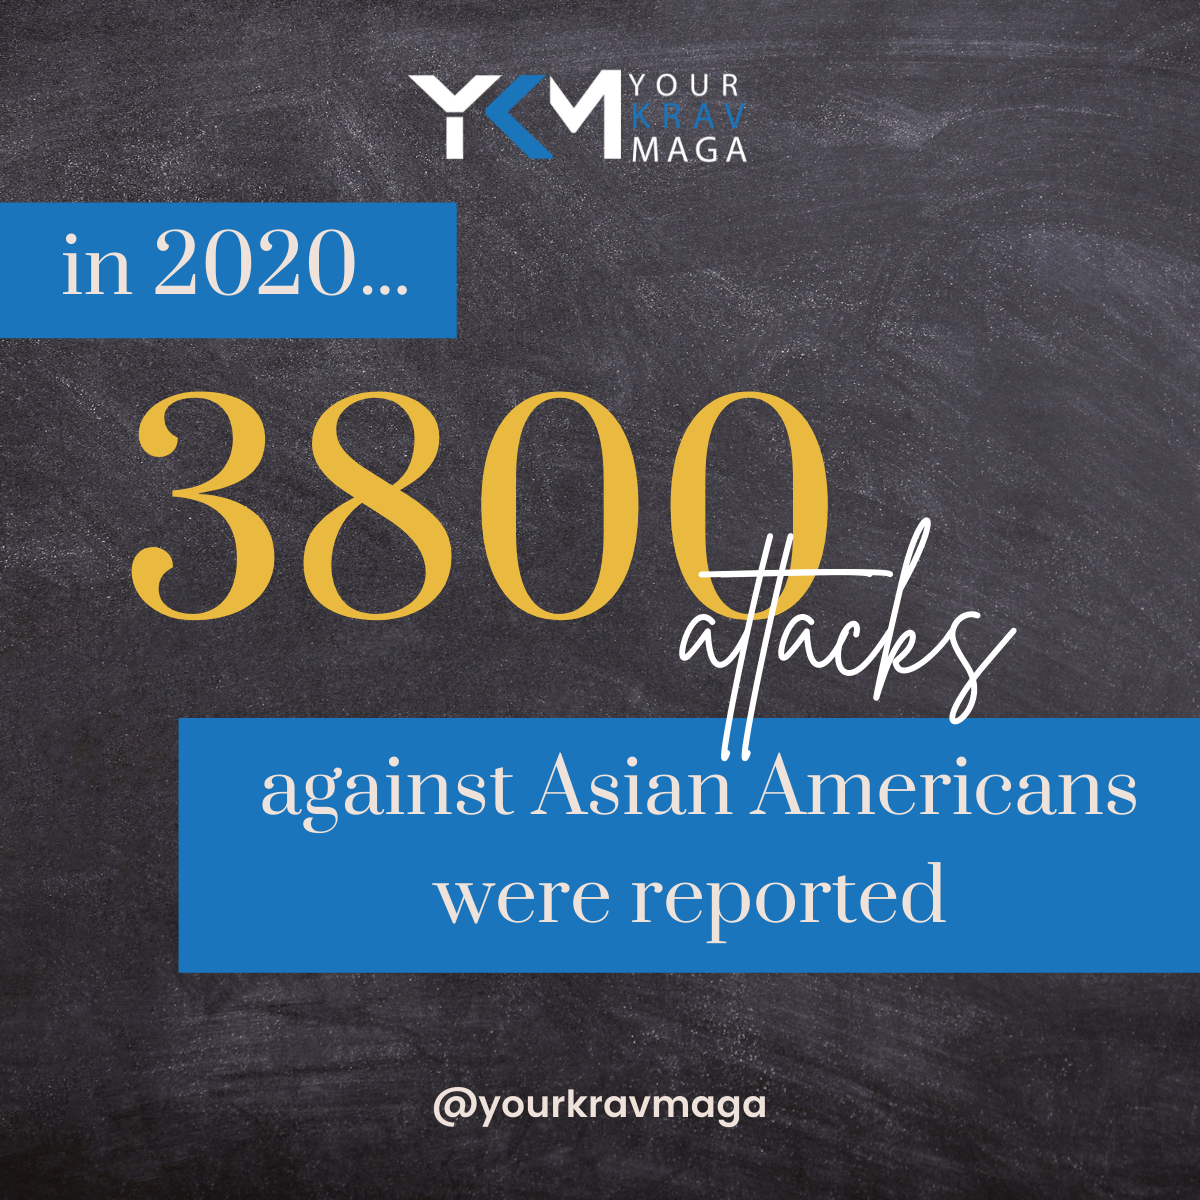 how many hate crimes or attacks were reported in 2020 against Asian Americans